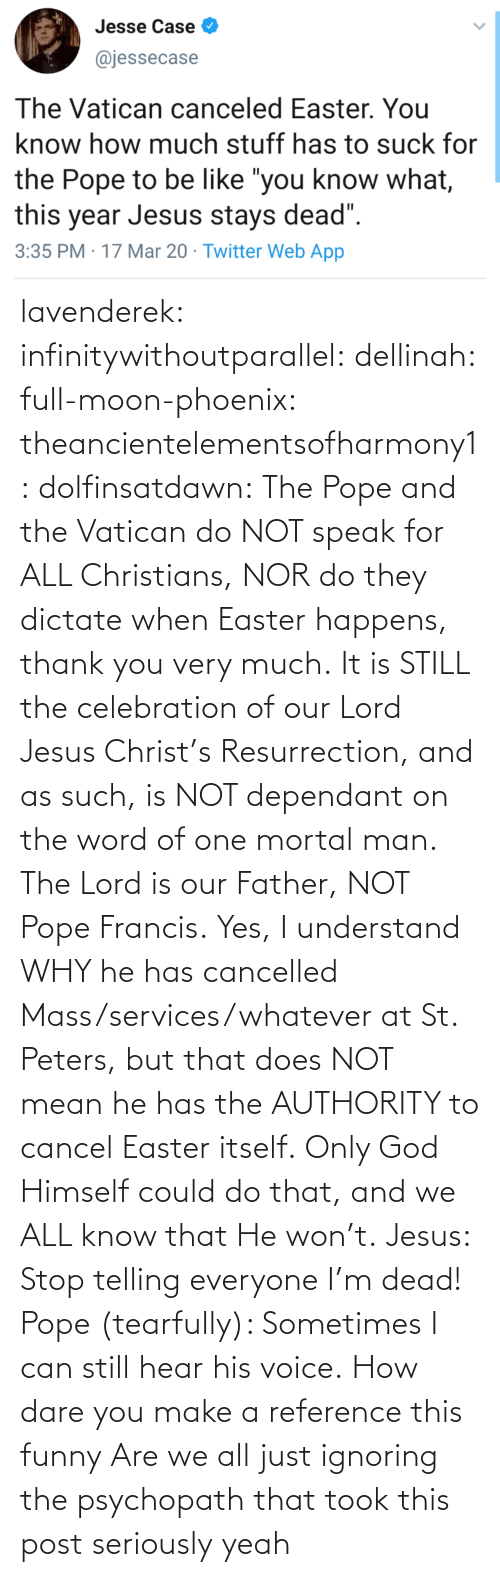 How Dare: lavenderek: infinitywithoutparallel:  dellinah:  full-moon-phoenix:   theancientelementsofharmony1:  dolfinsatdawn:    The Pope and the Vatican do NOT speak for ALL Christians, NOR do they dictate when Easter happens, thank you very much. It is STILL the celebration of our Lord Jesus Christ's Resurrection, and as such, is NOT dependant on the word of one mortal man. The Lord is our Father, NOT Pope Francis. Yes, I understand WHY he has cancelled Mass/services/whatever at St. Peters, but that does NOT mean he has the AUTHORITY to cancel Easter itself. Only God Himself could do that, and we ALL know that He won't.    Jesus: Stop telling everyone I'm dead! Pope (tearfully): Sometimes I can still hear his voice.    How dare you make a reference this funny    Are we all just ignoring the psychopath that took this post seriously     yeah